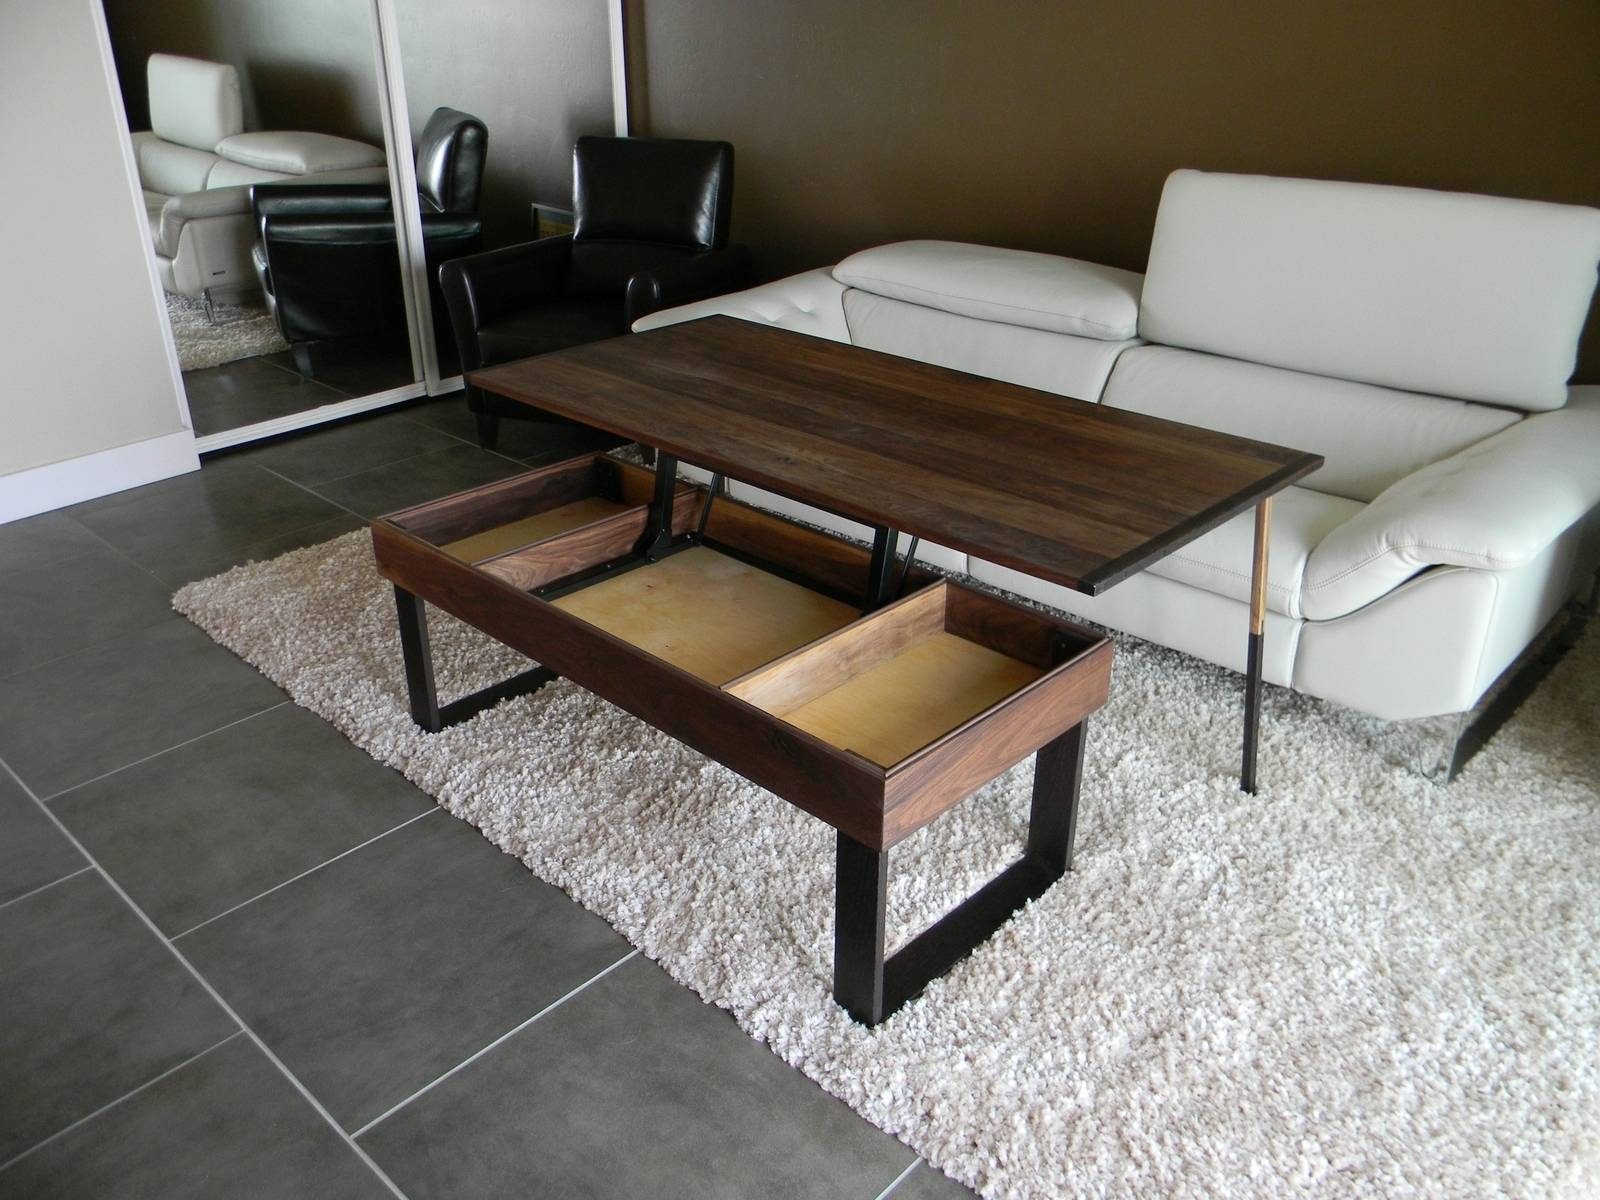 Coffee Table: Marvellous Coffee Table That Lifts Up Design Ideas intended for Lift Up Coffee Tables (Image 11 of 30)